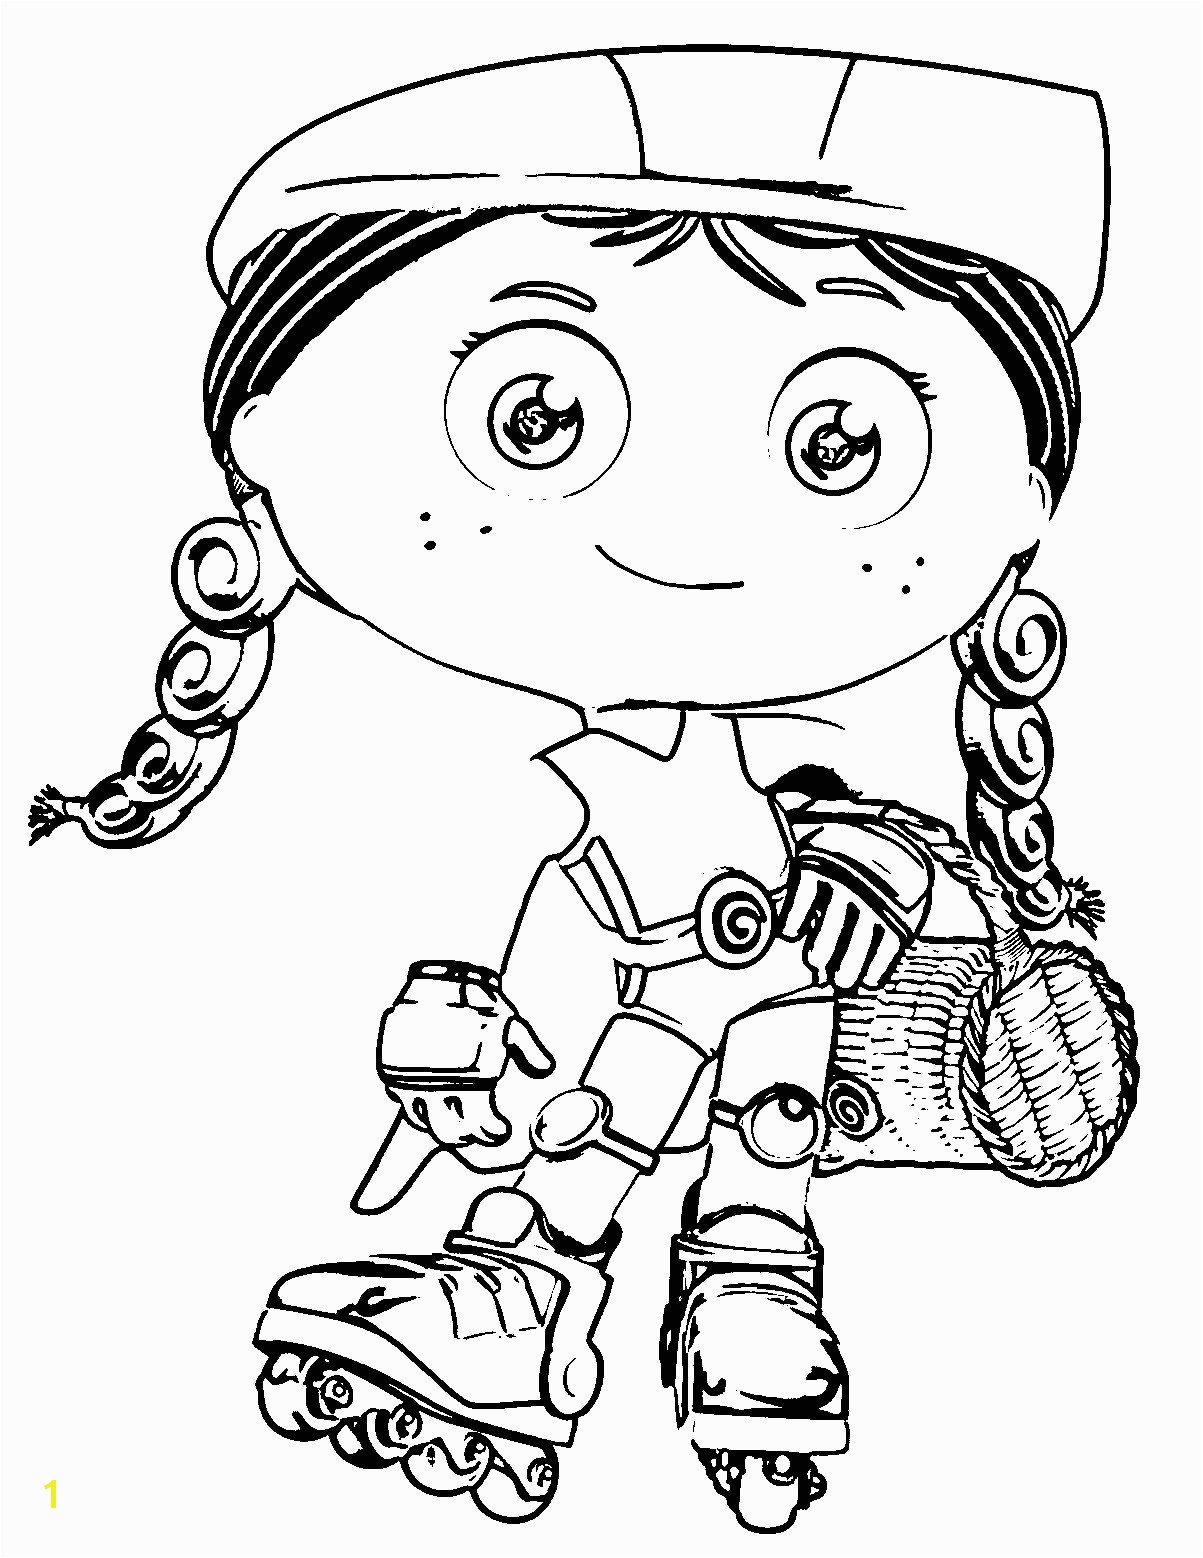 Nice Woofster Coloring Pages Colouring s Pretty Inspiring Super Why Coloring Pages 11 For Kids Unknown Draw